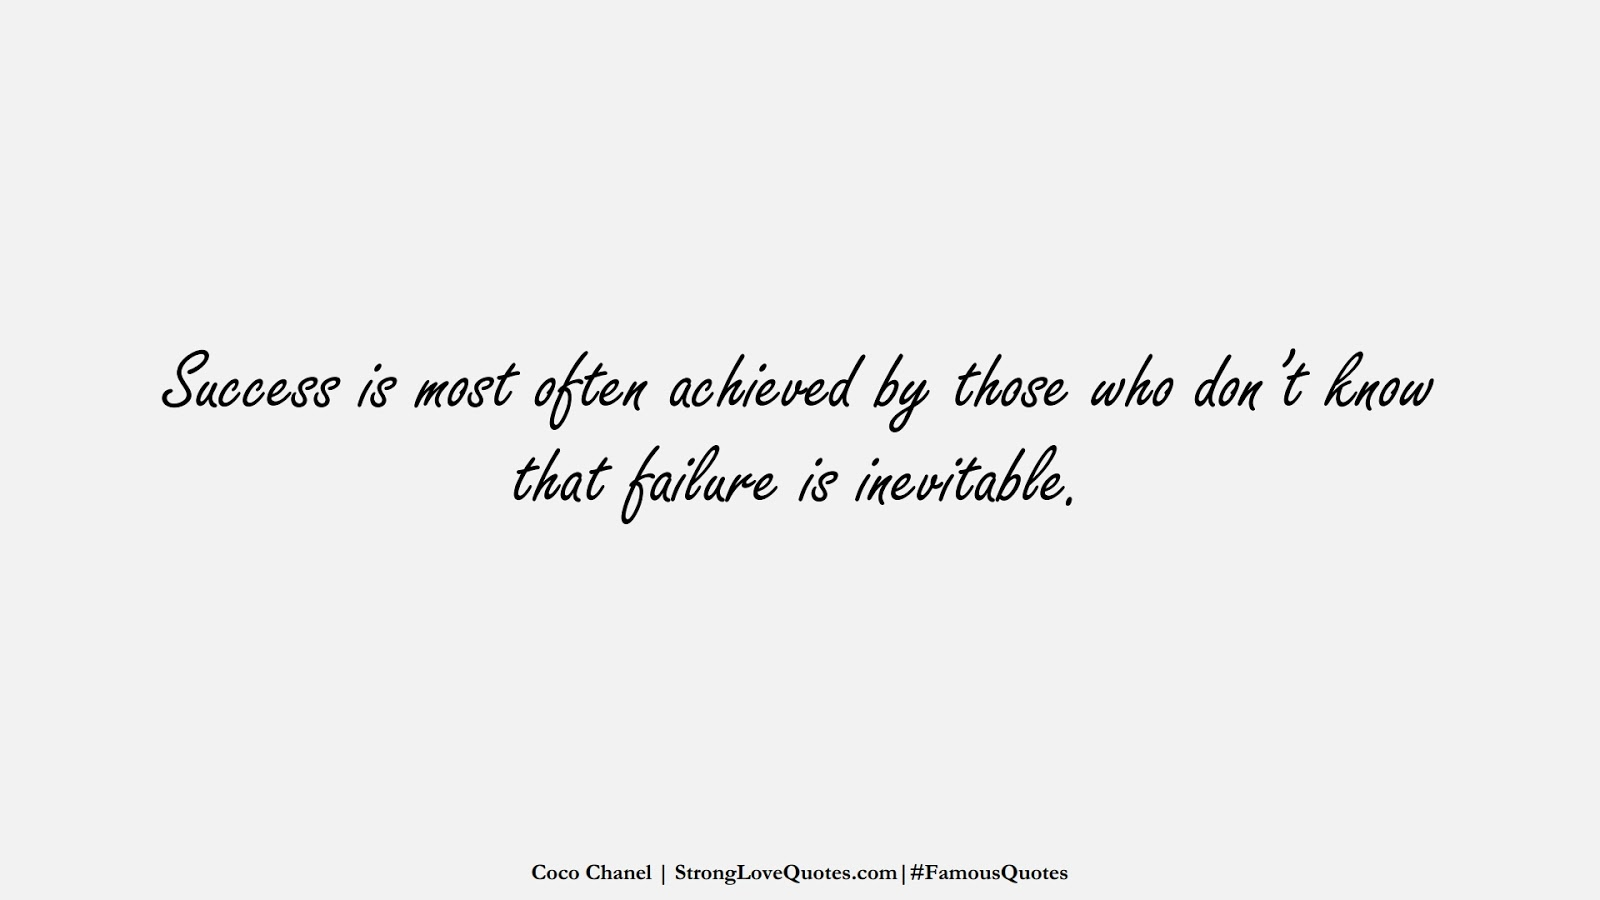 Success is most often achieved by those who don't know that failure is inevitable. (Coco Chanel);  #FamousQuotes